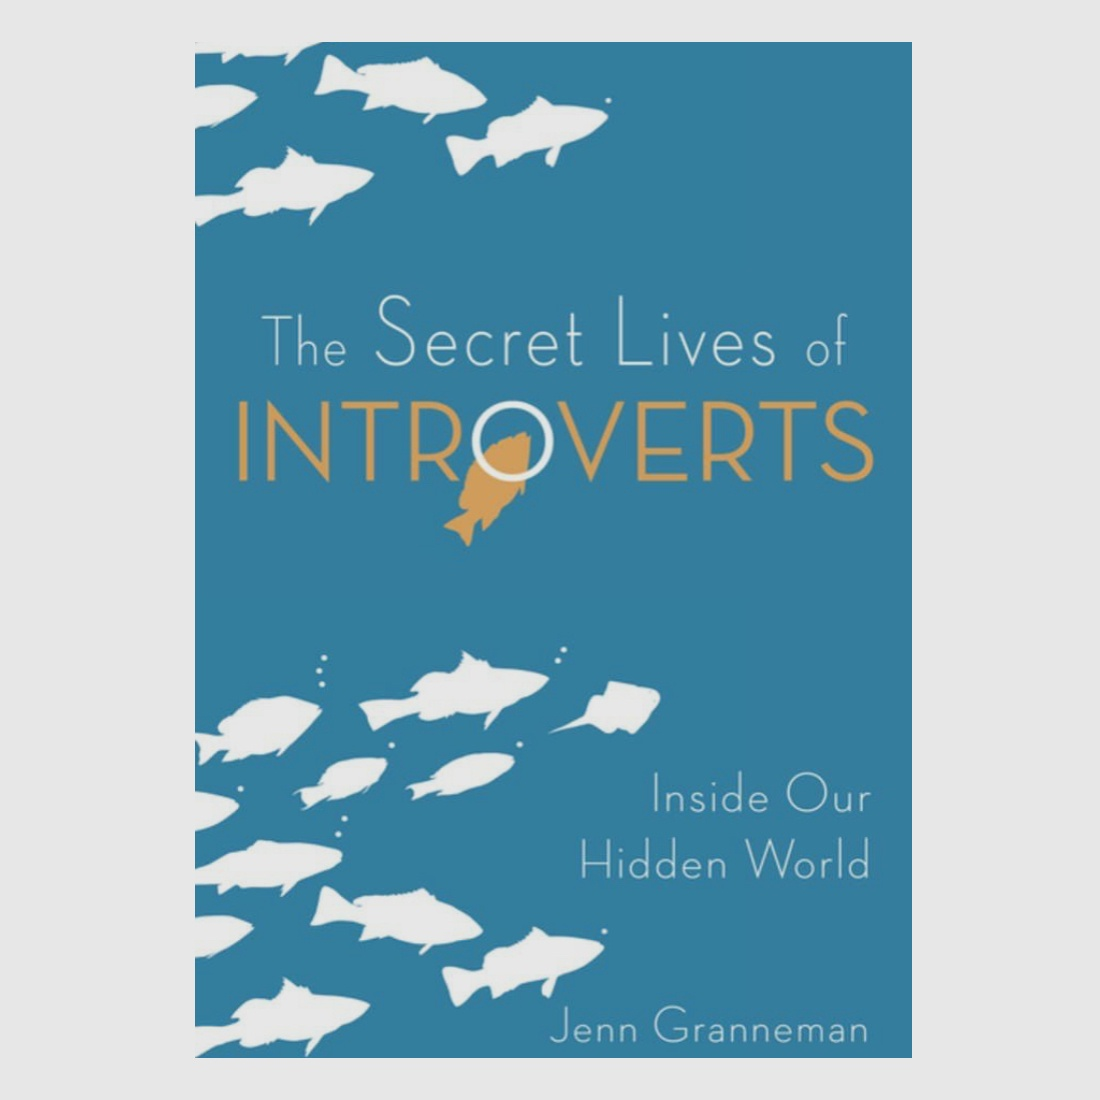 gifts for introverts Secret Lives of Introverts